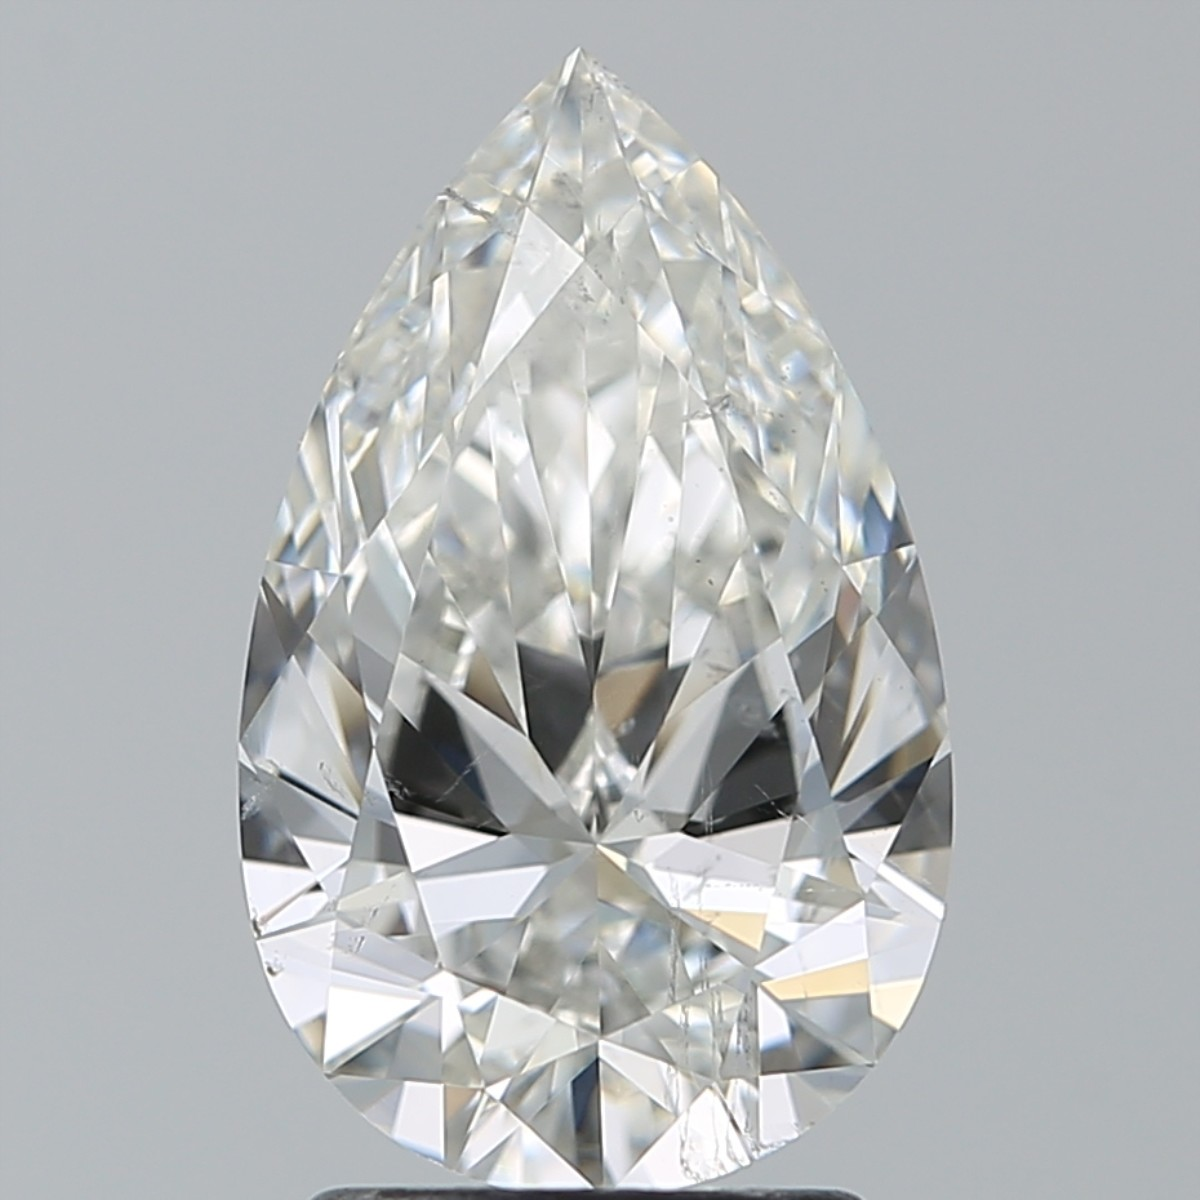 2.18 Carat Pear Diamond (H/SI1)